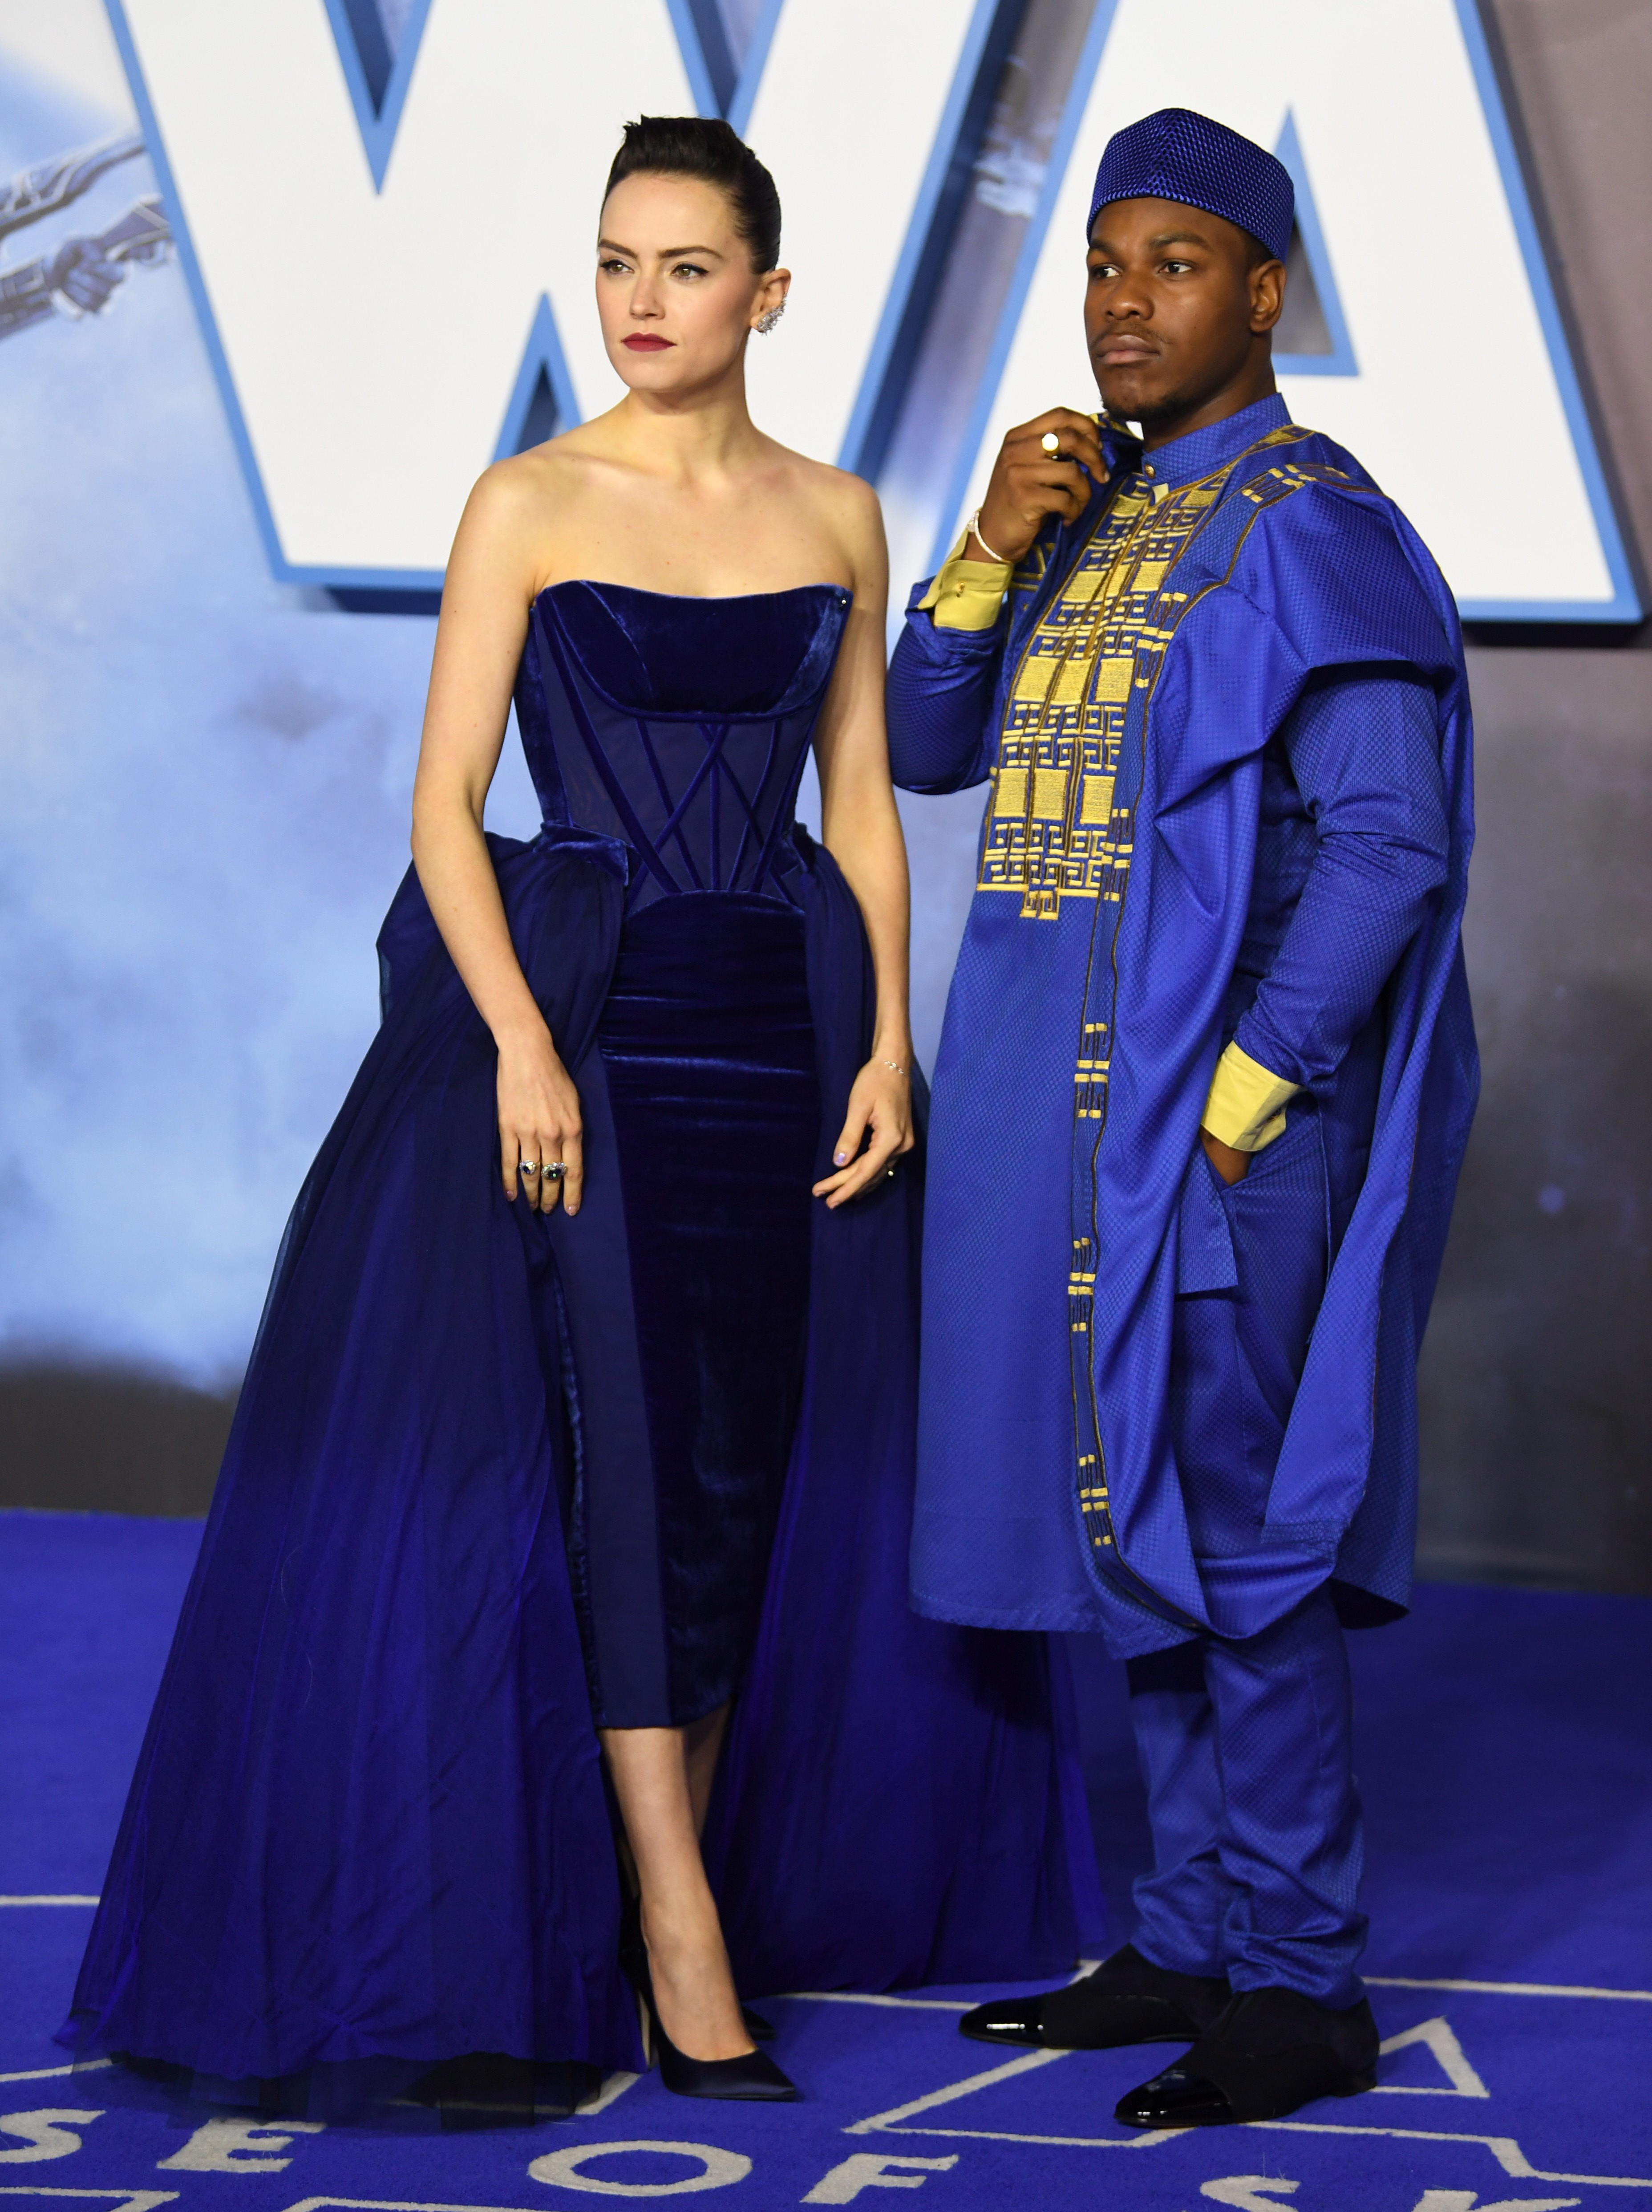 Star Wars The Rise Of Skywalker Premiere Daisy Ridley John Boyega And Kelly Marie Tran Dazzle On The Red Carpet In London South China Morning Post